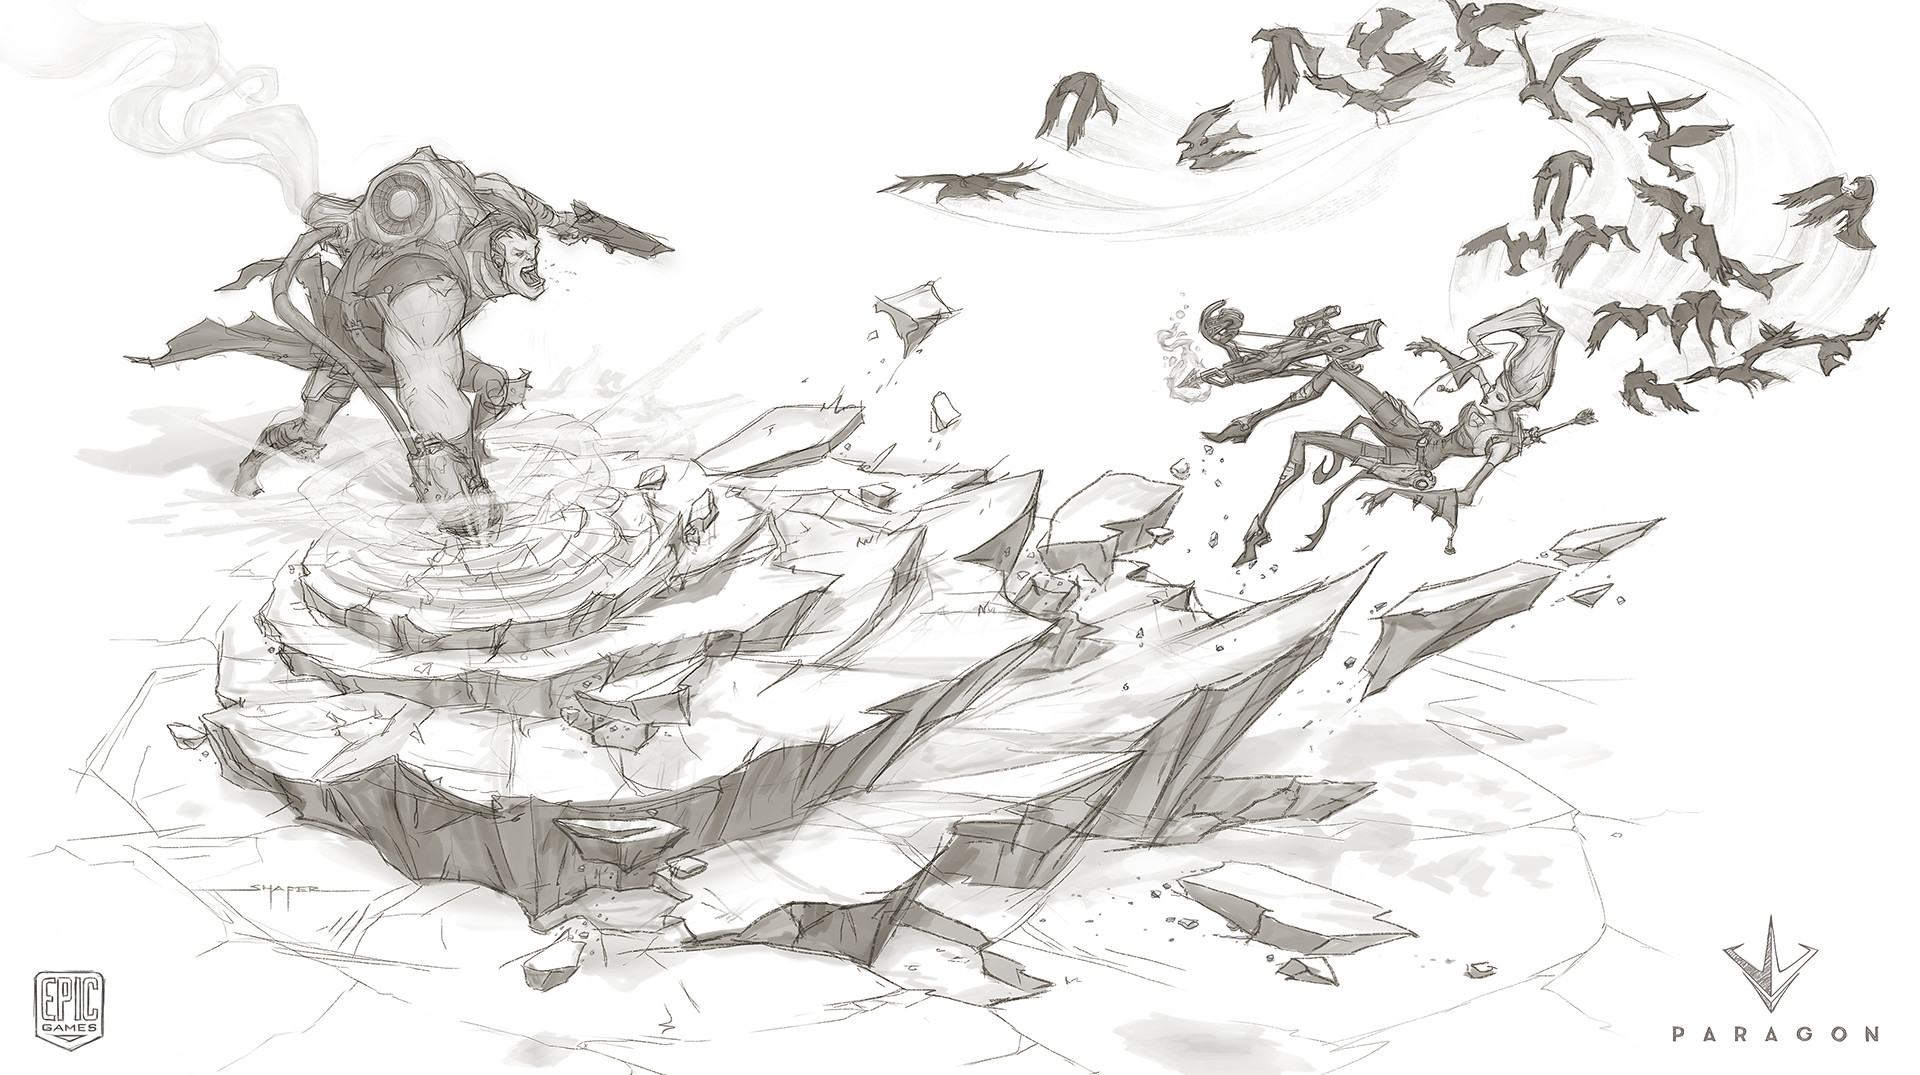 Sketch for scene idea before going for crop in composition